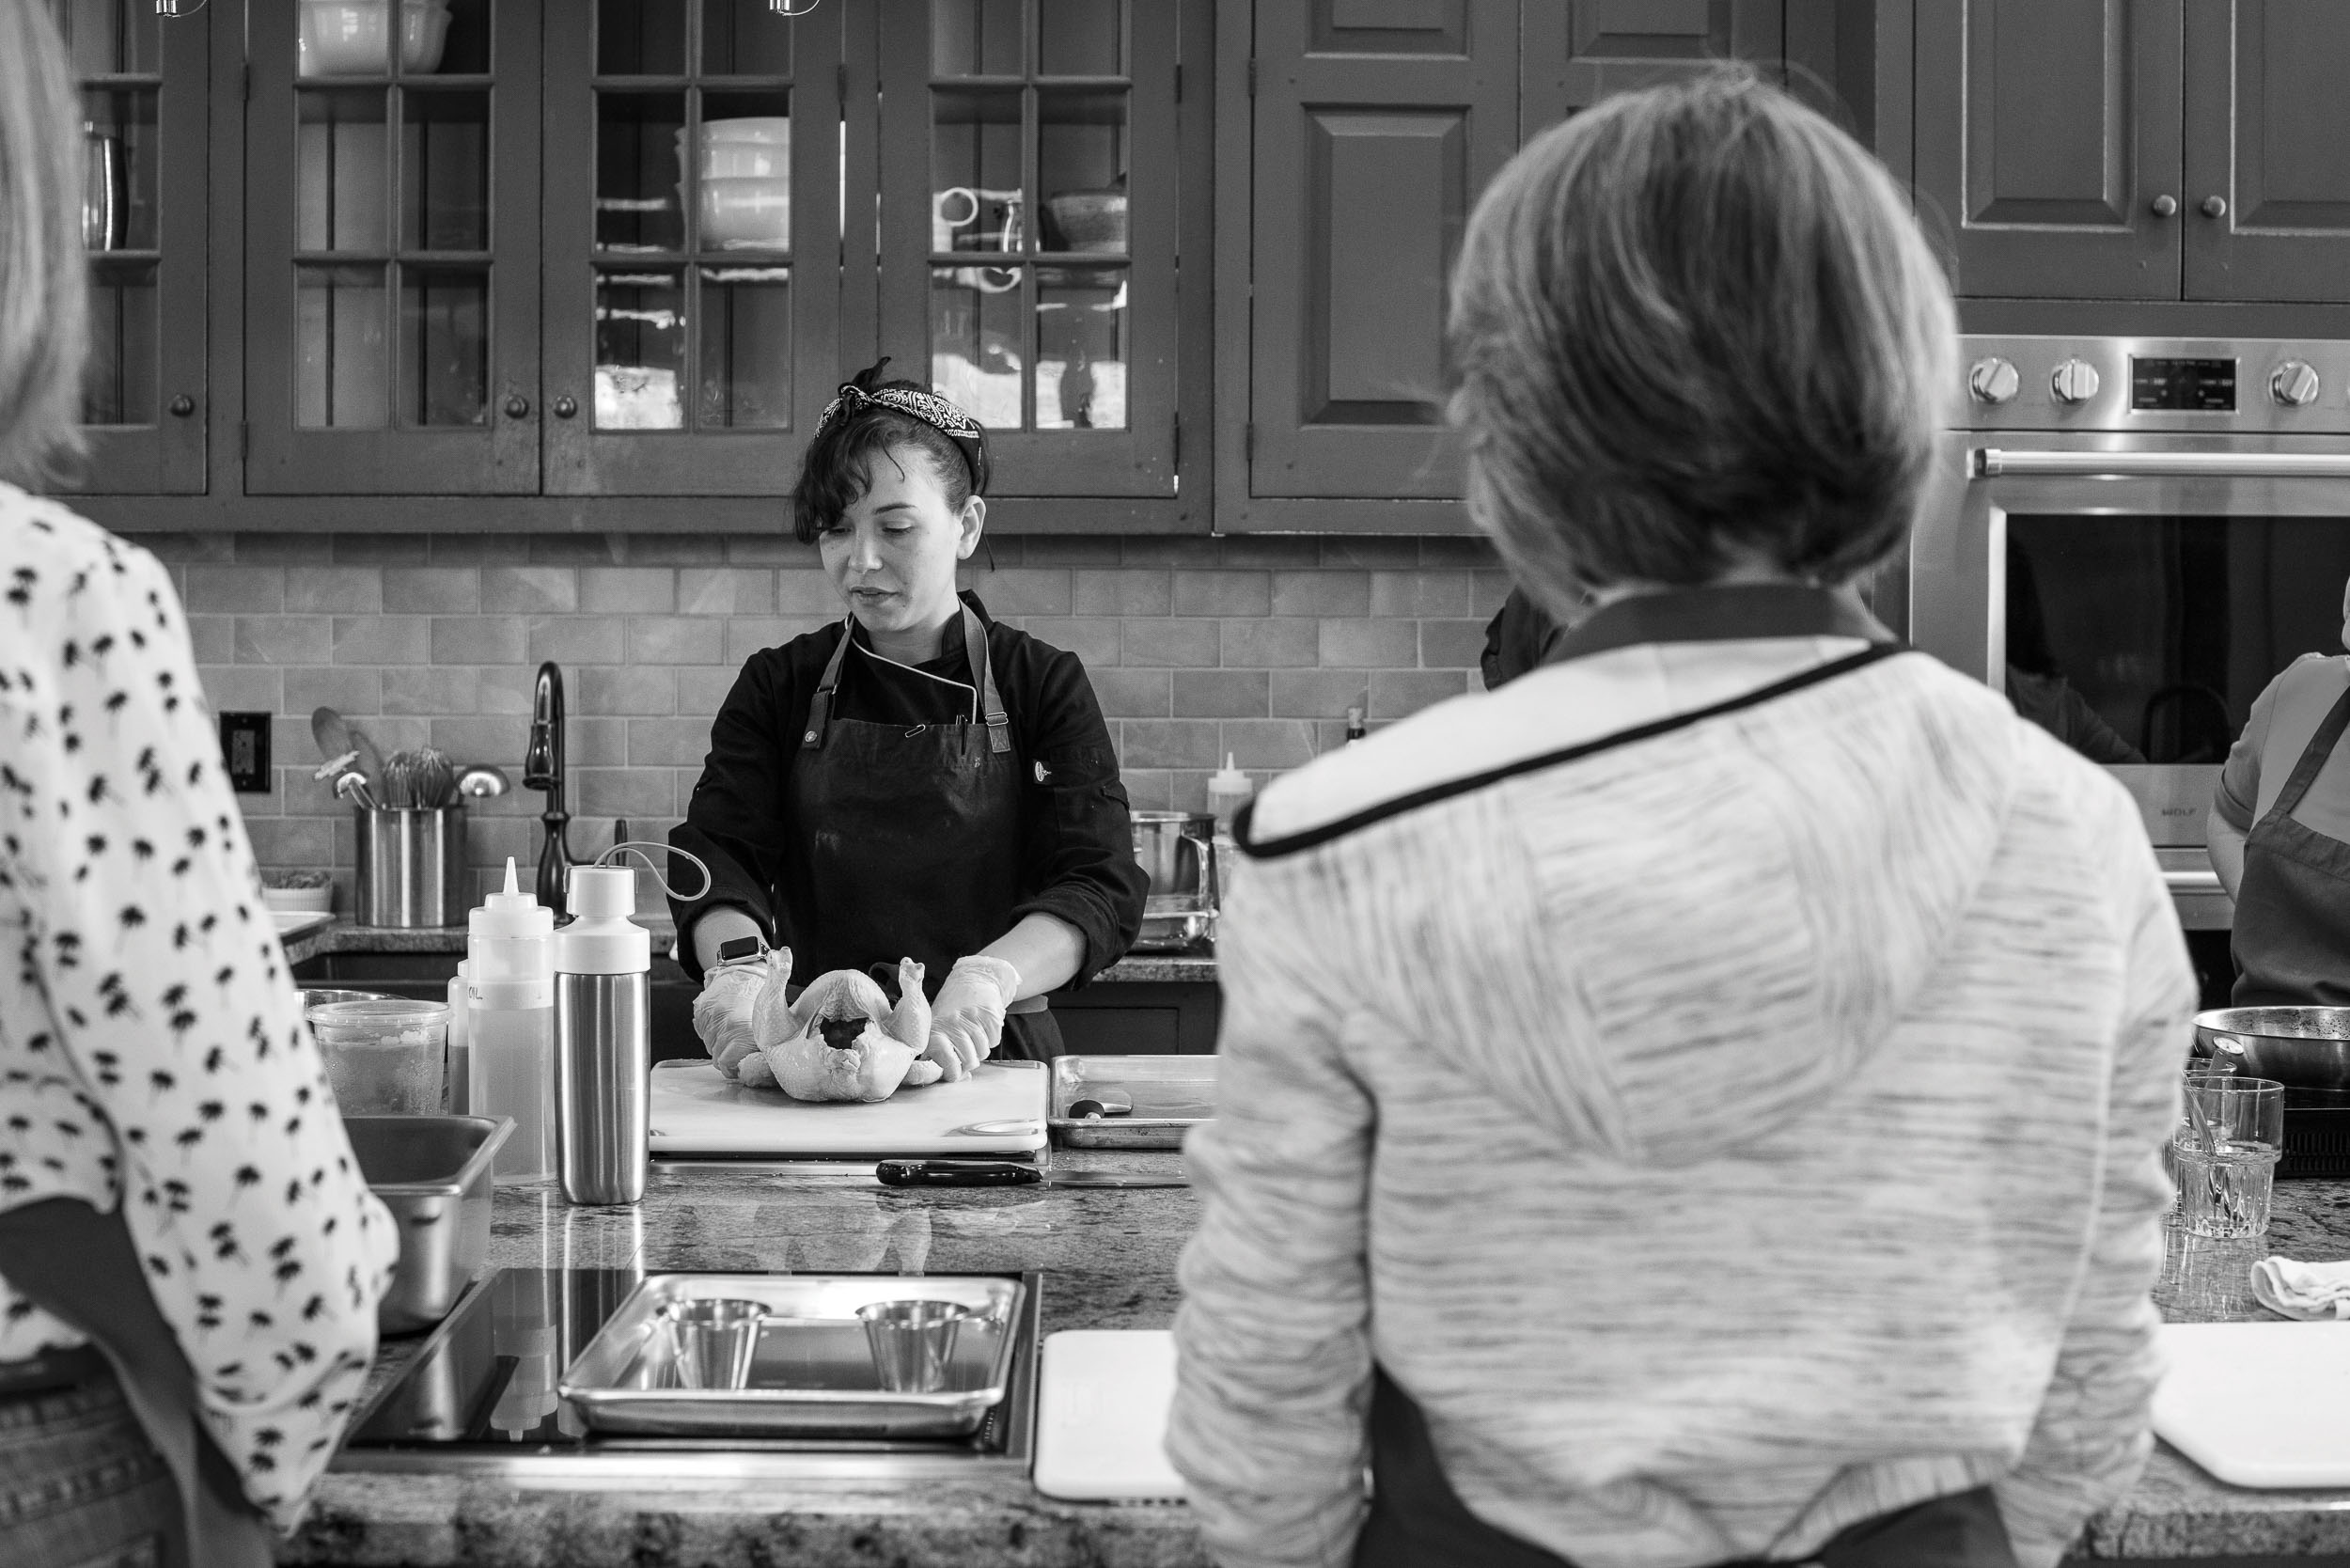 Turner Farm in Indian Hill is one of 32 organizations that form the national Teaching Kitchen Collaborative. Local teams from the farm and UC Integrative Medicine receive guidance from TKC's founder, Dr David Eisenberg.